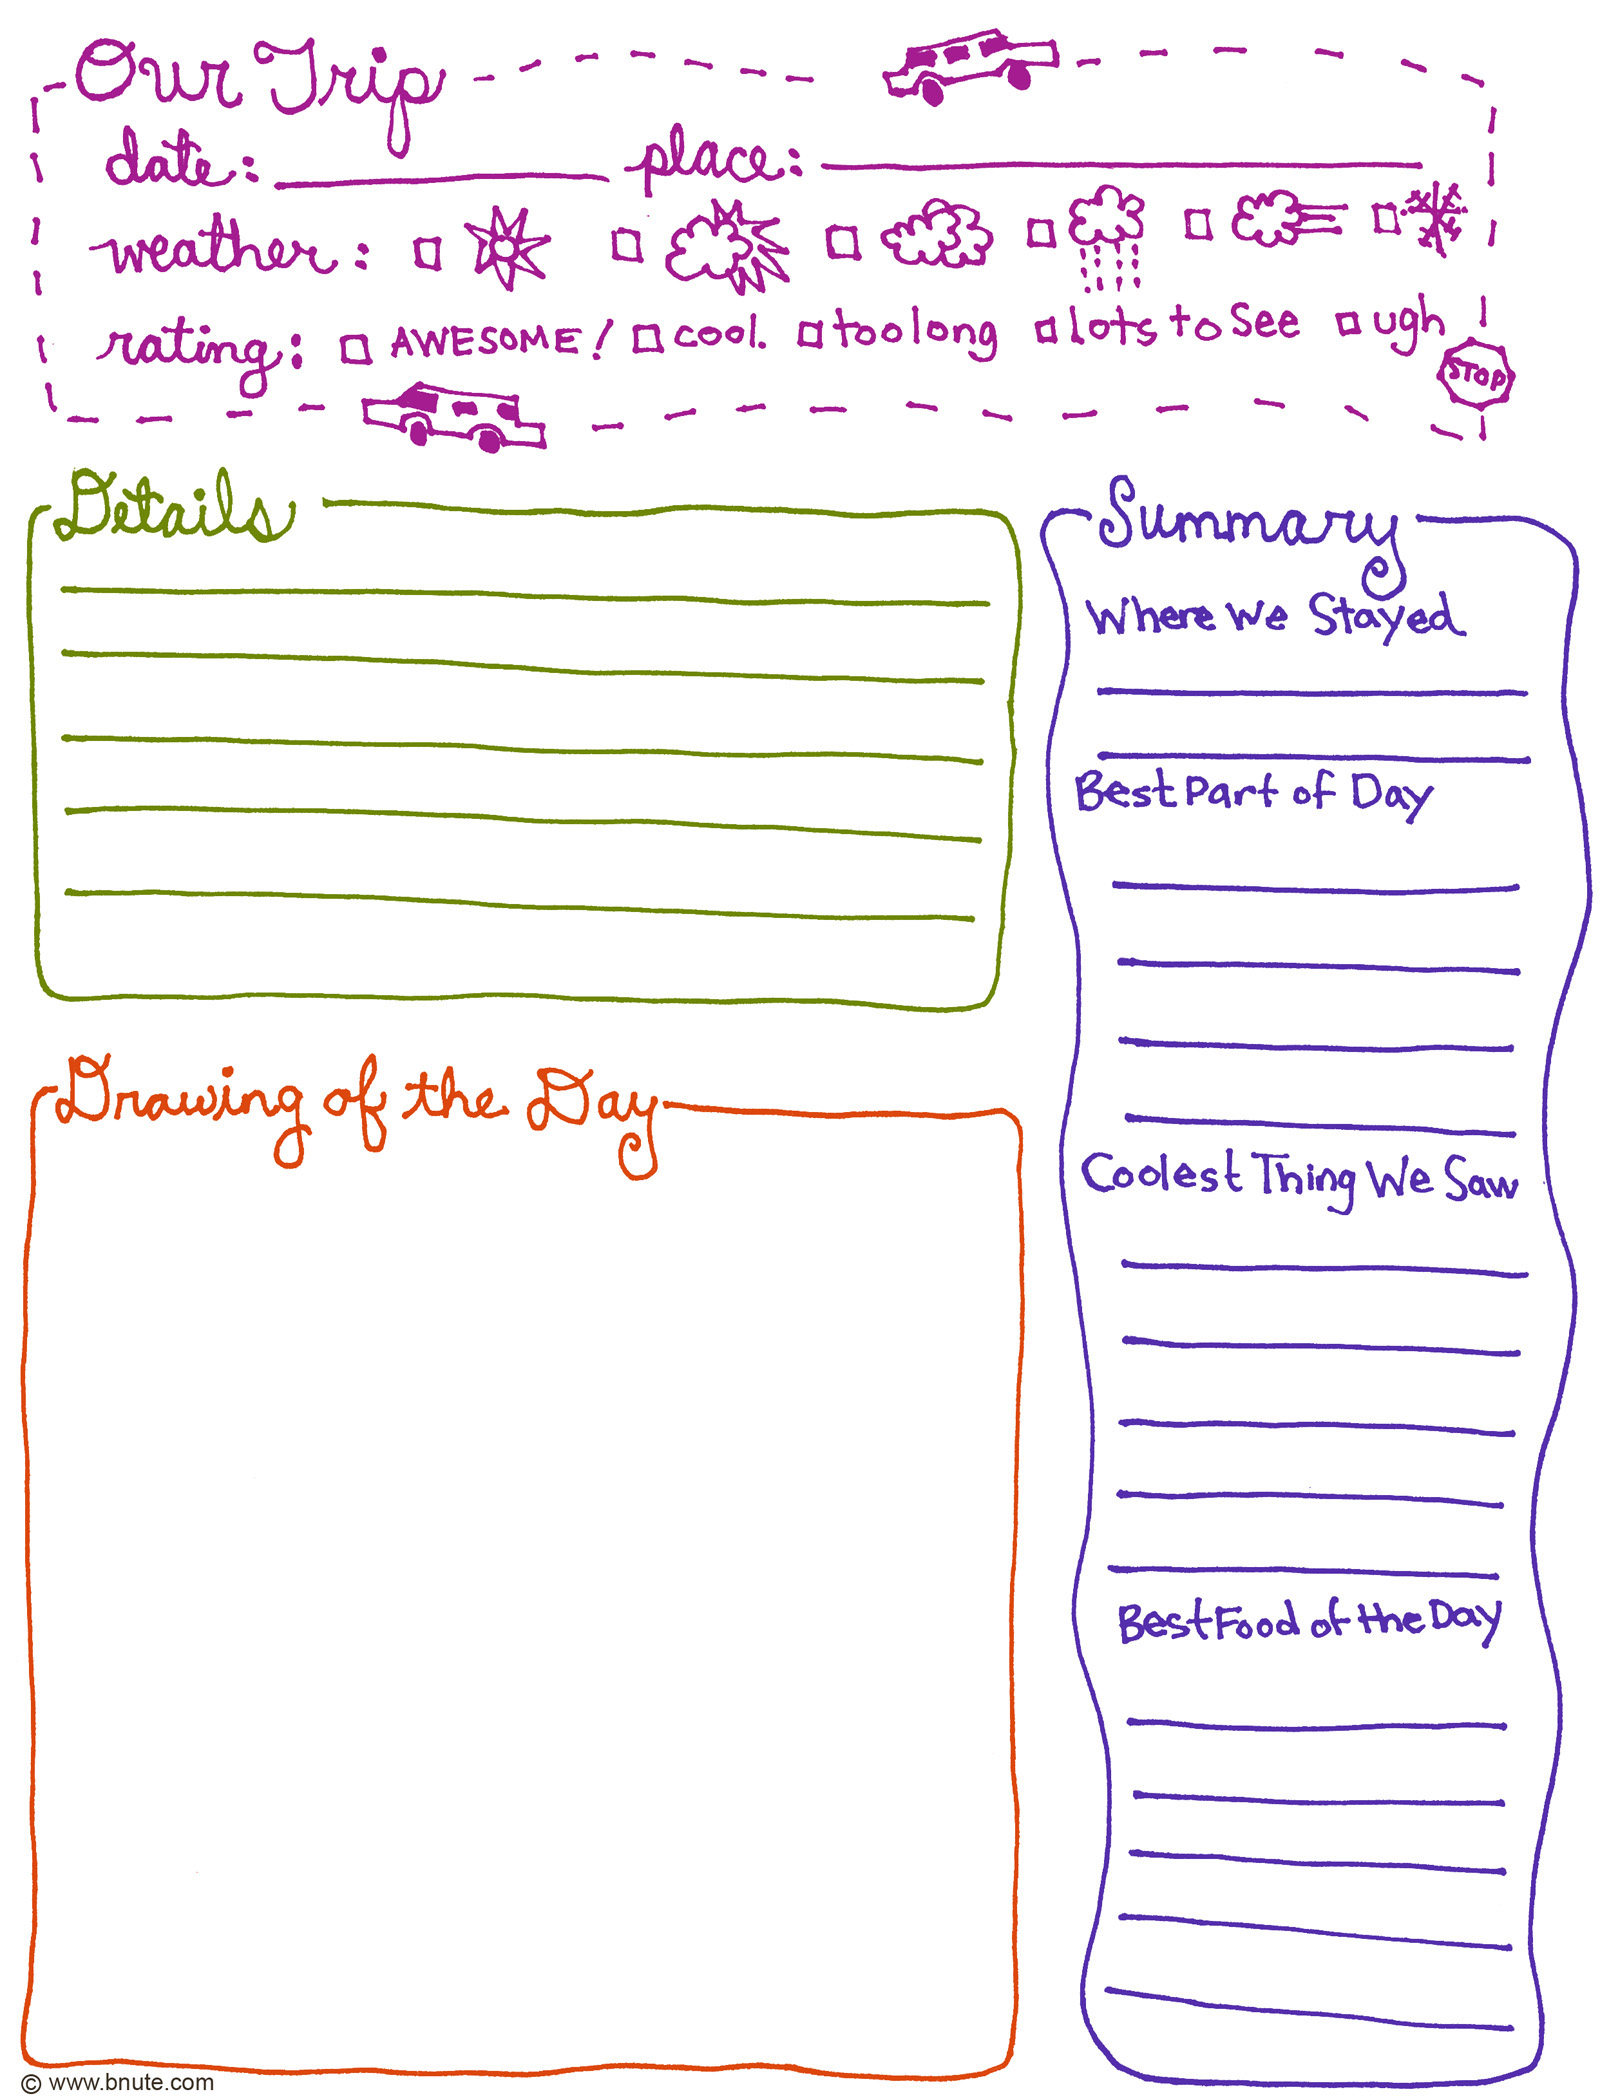 4 Images of Printable Daily Journal Sheets